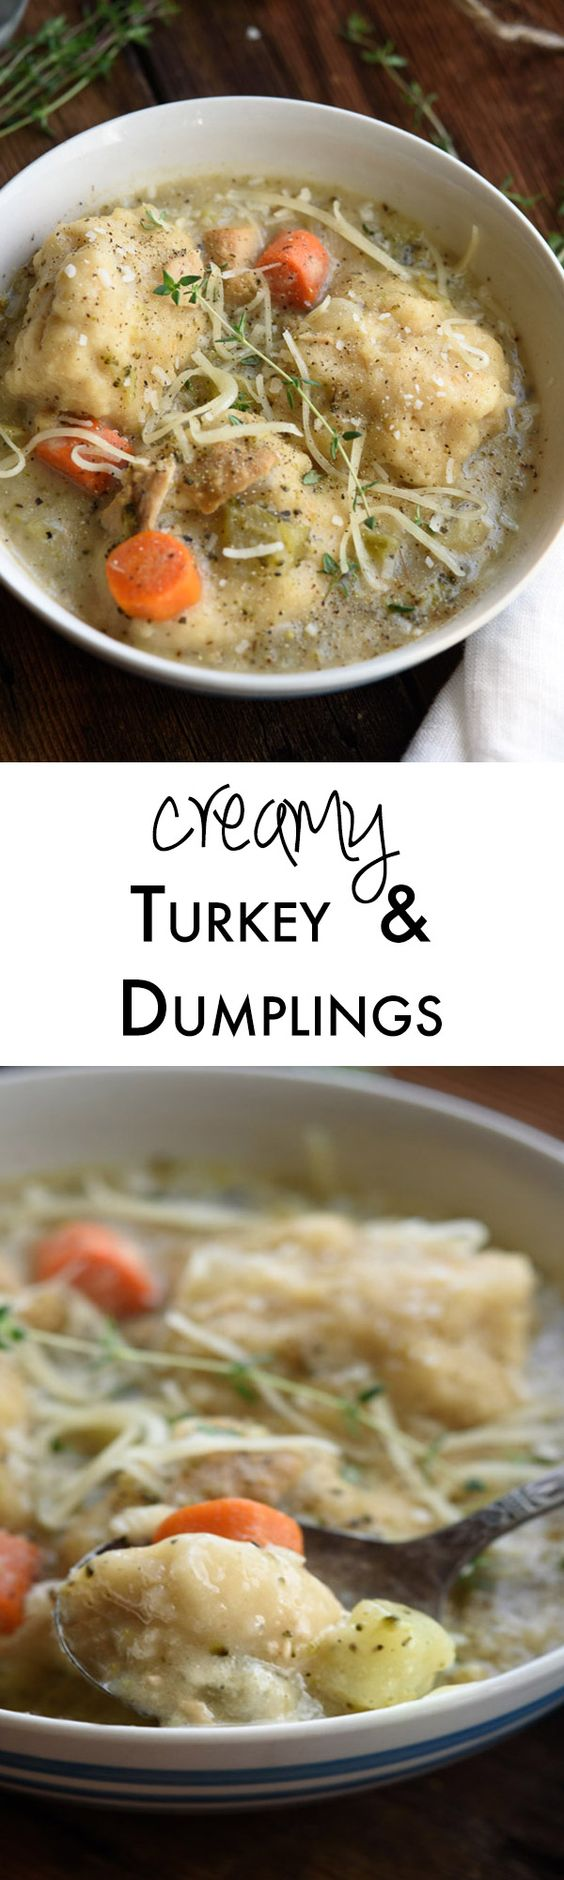 Turkey and dumplings made from scratch is the perfect dinner. We tested and tested to find the best whole wheat dumplings ever! 1 hour weeknight simple recipe for a warm cozy dinner.